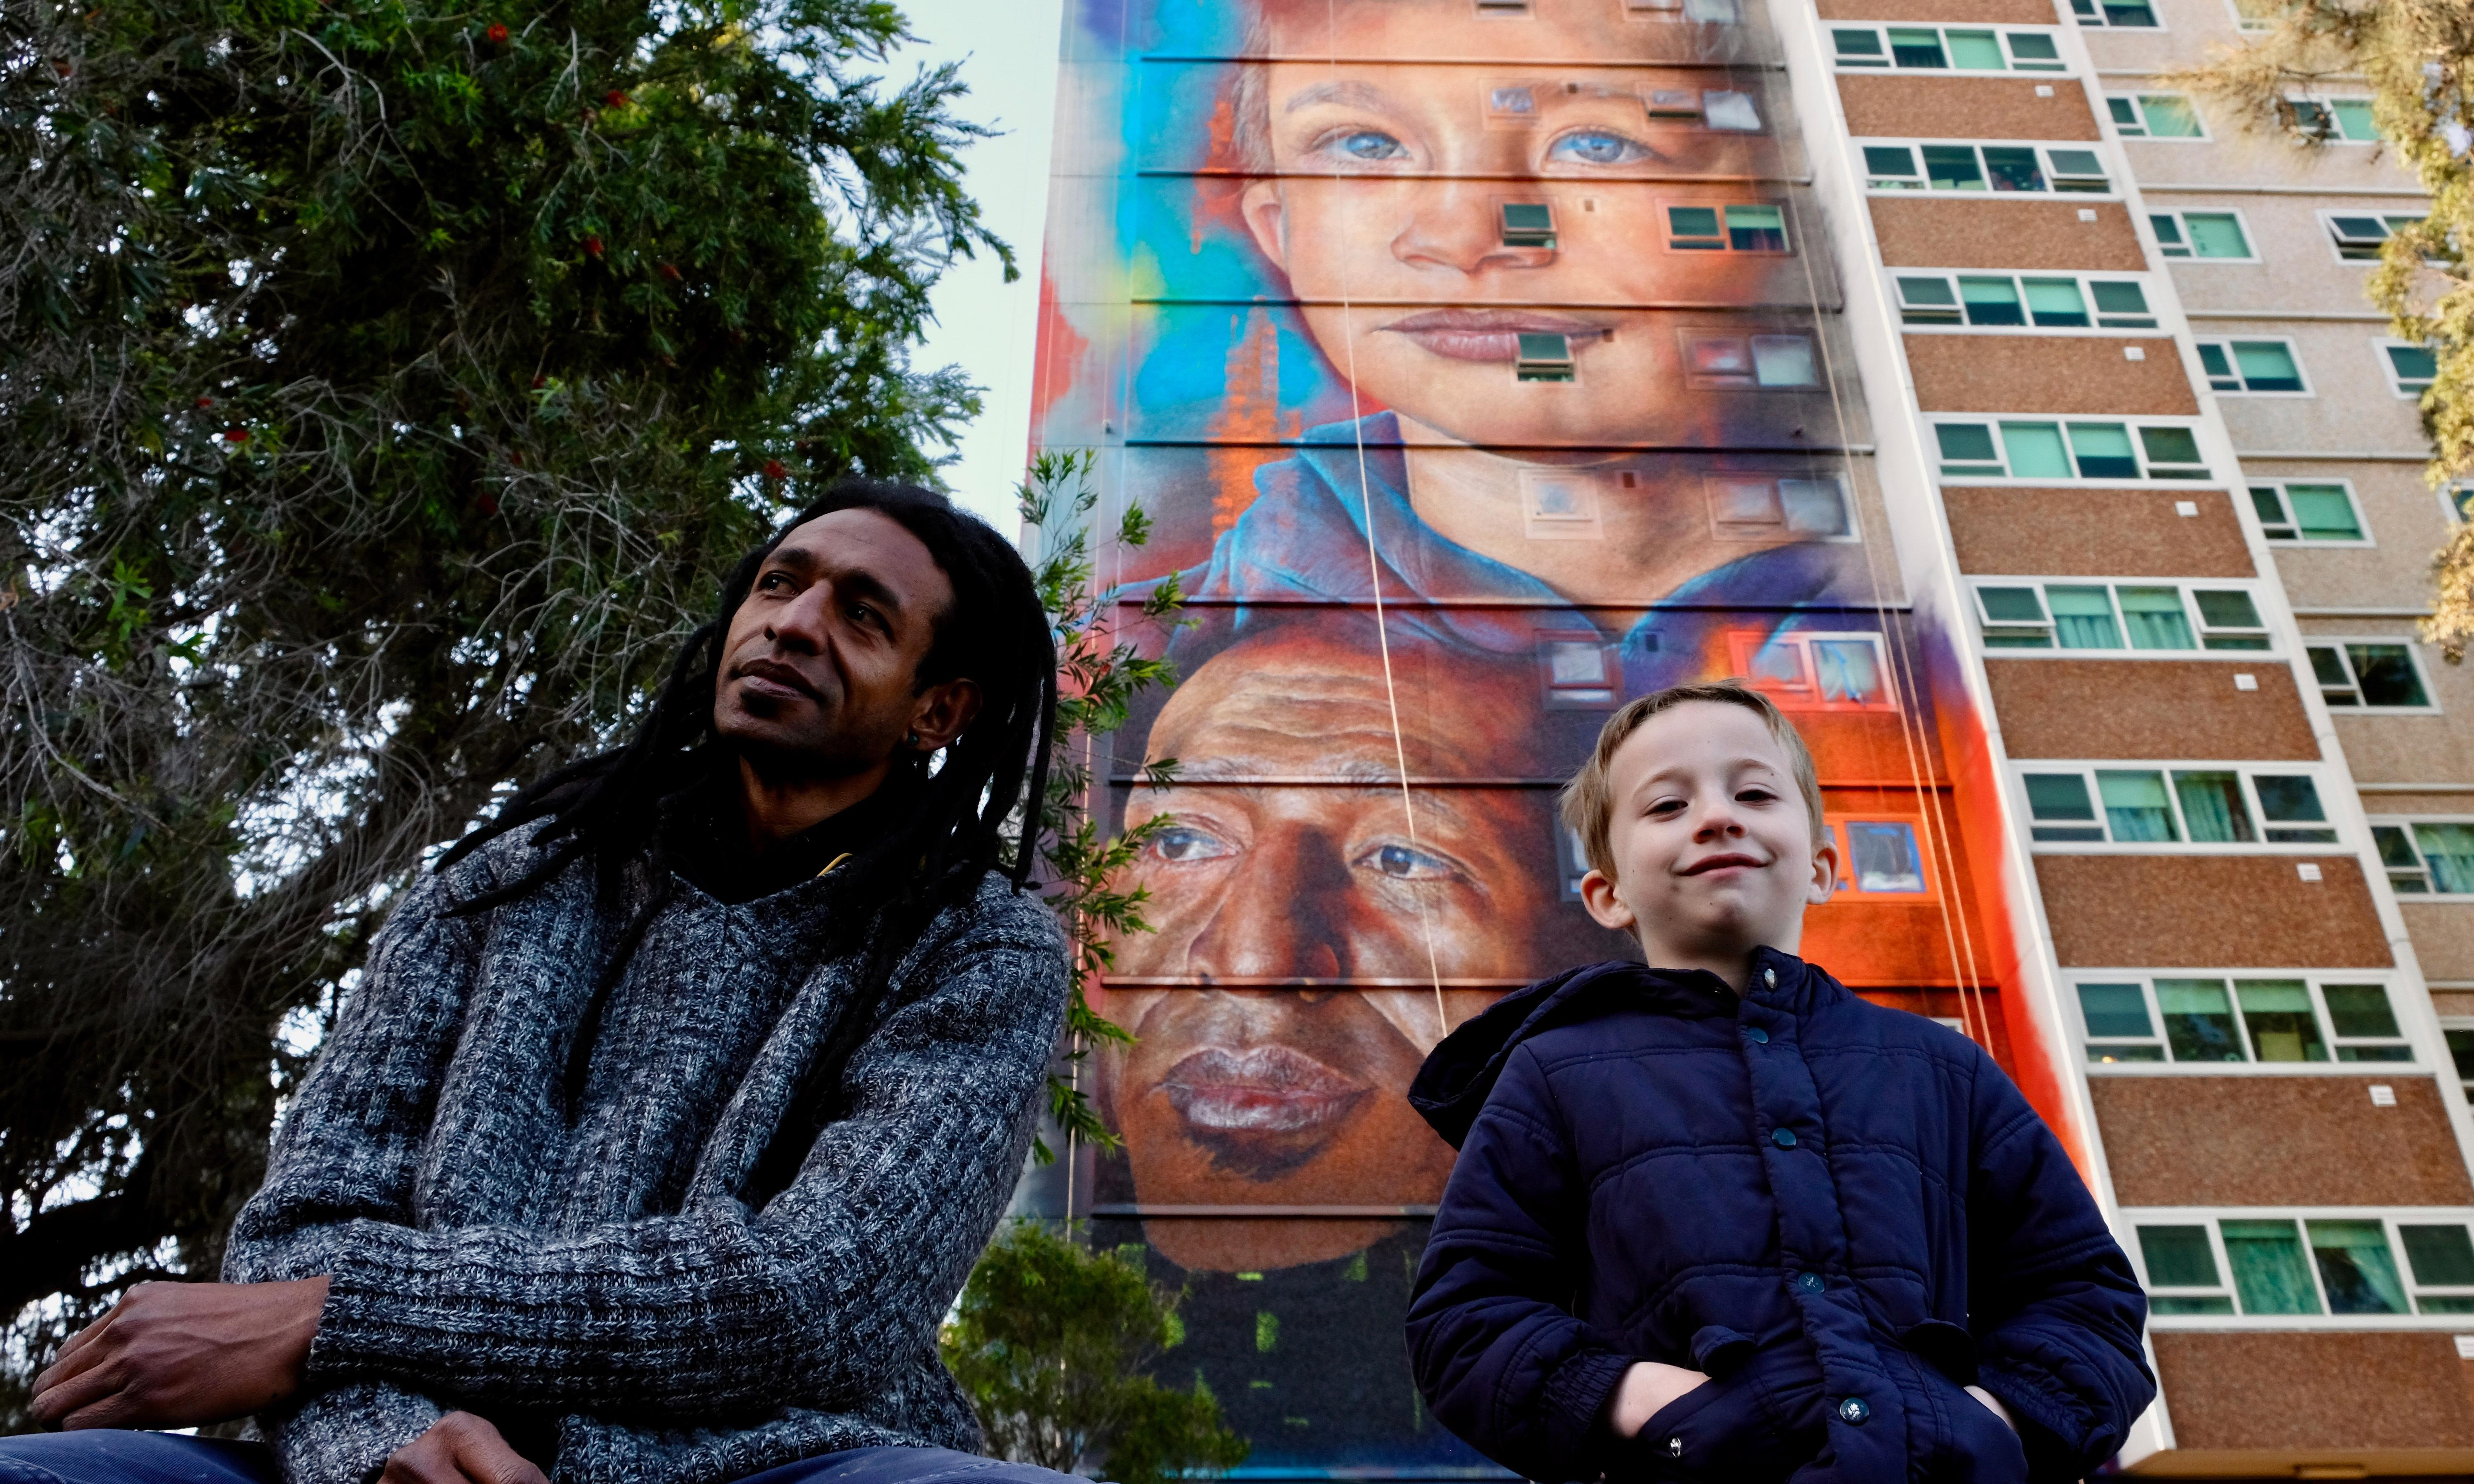 Tallest mural in the southern hemisphere unveiled in Melbourne